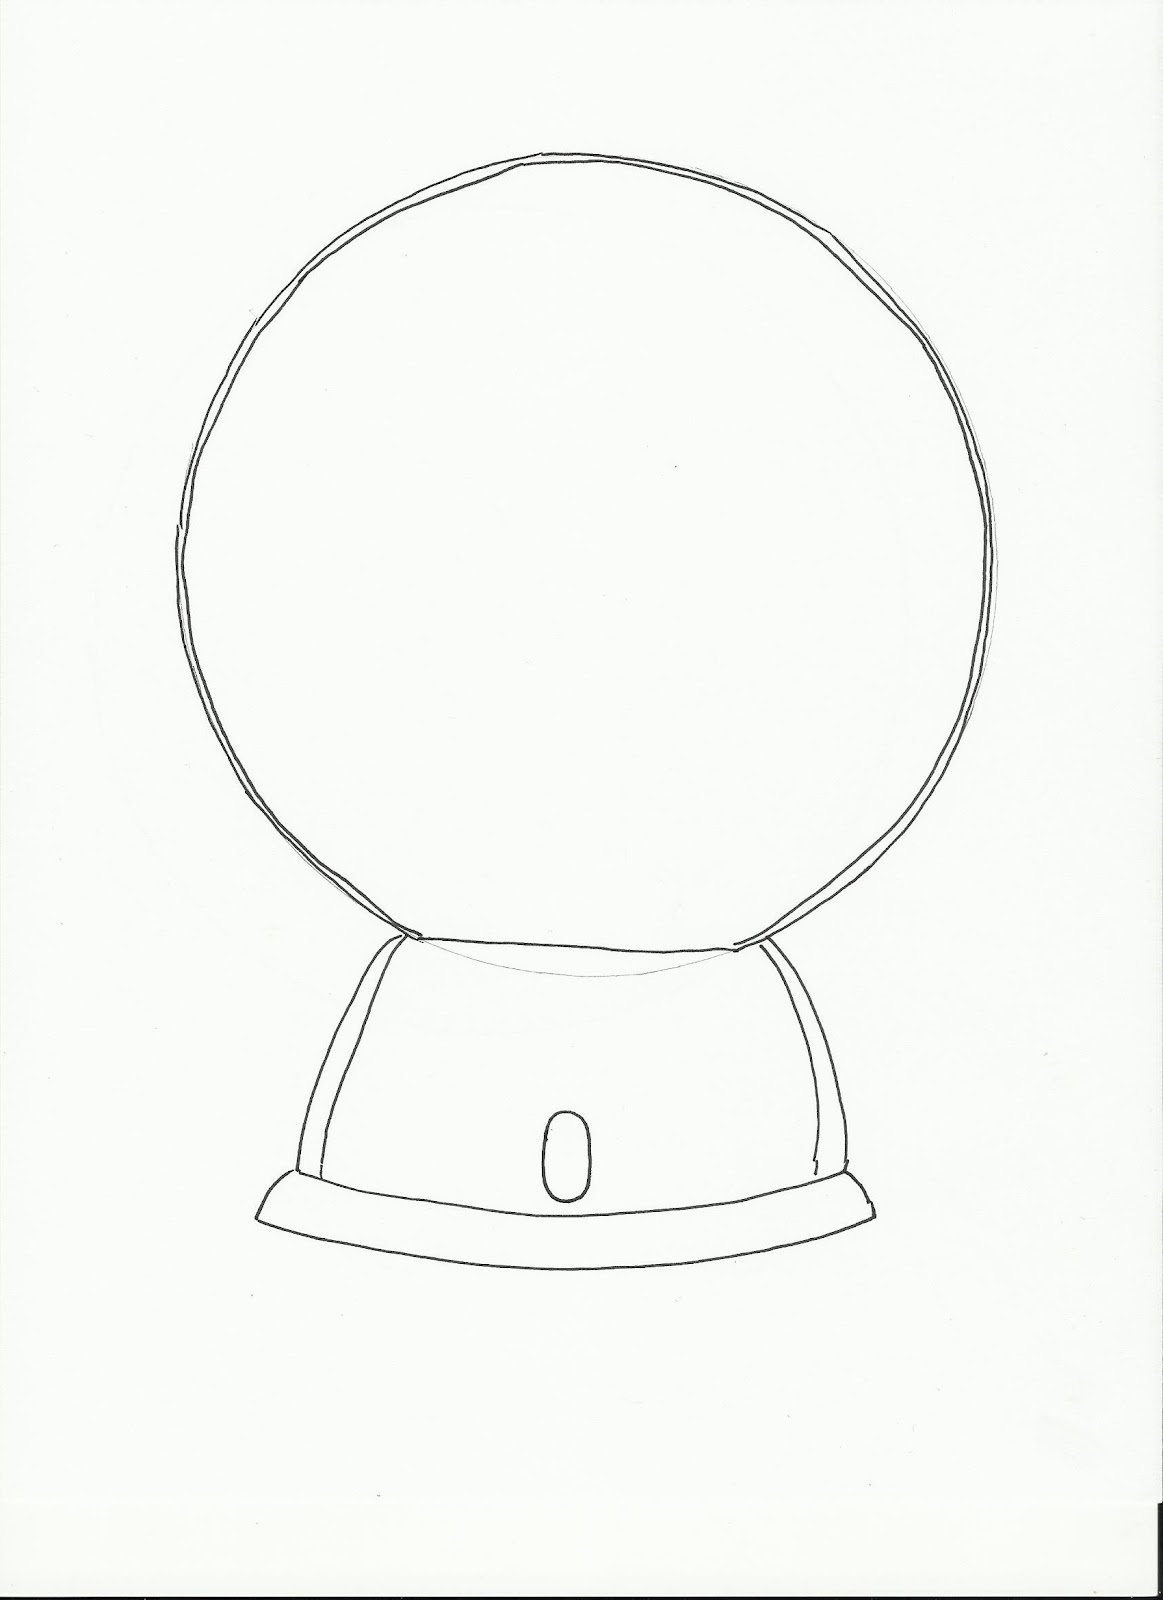 Gumball machines art class ideas gumball machines pronofoot35fo Images